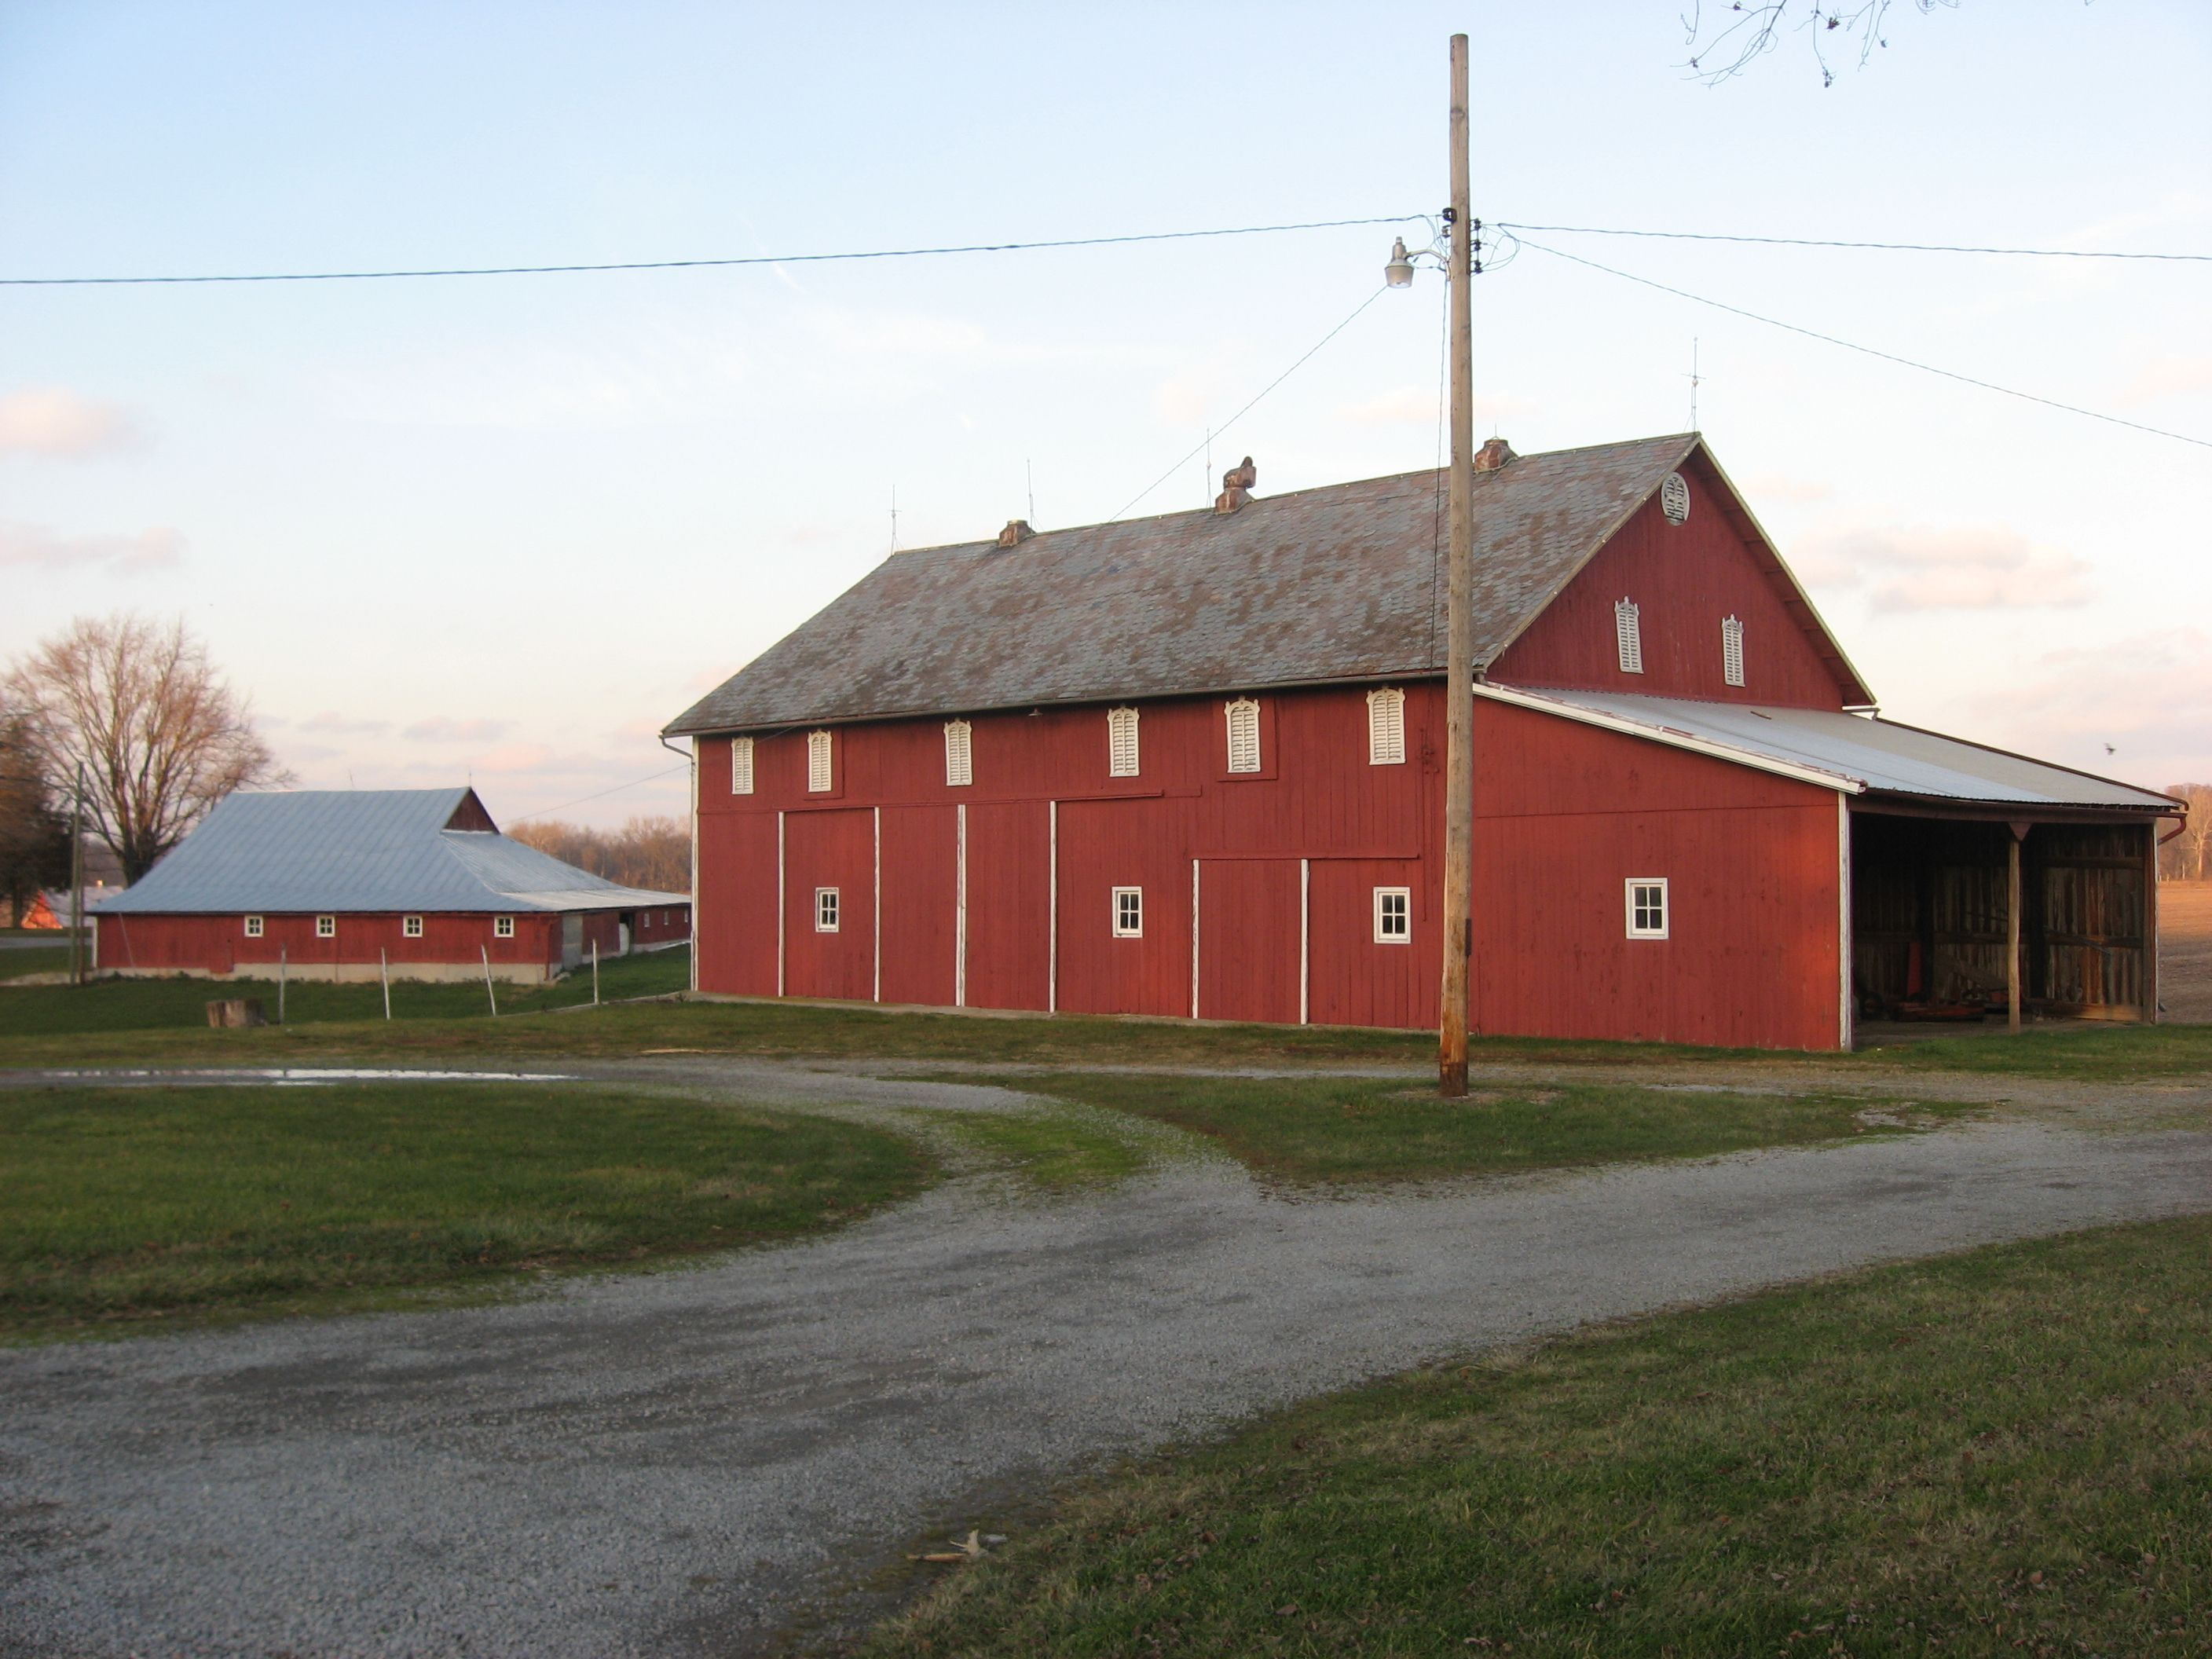 File:Armstrong Farm barns.jpg - Wikipedia, the free ...